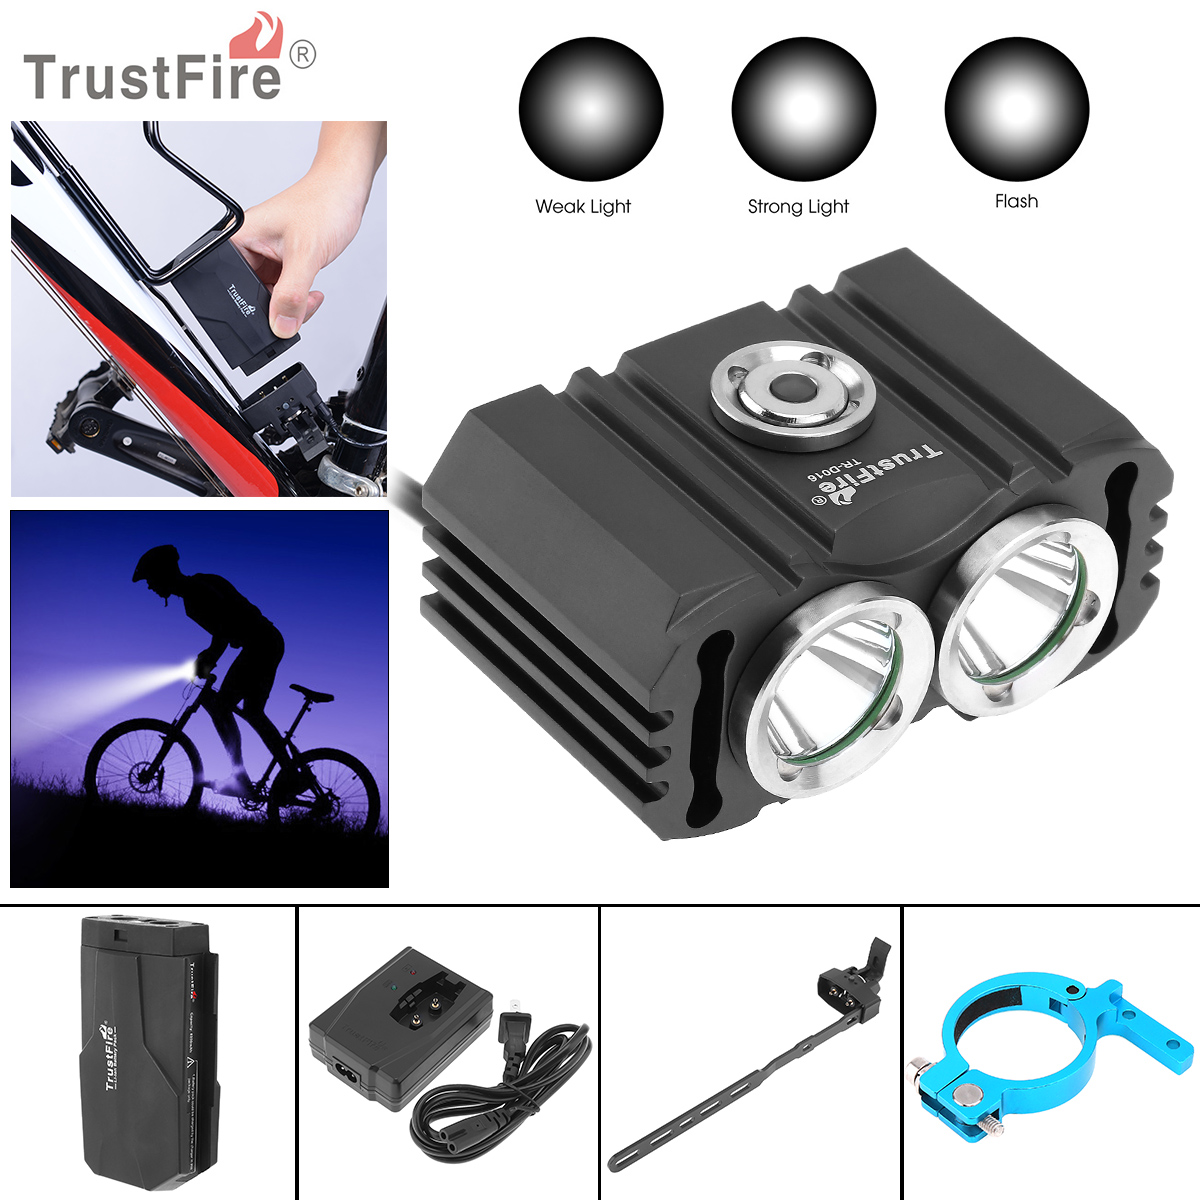 TrustFire 3 Switch Mode D016 2x XM-L2 LED 4.2V Waterproof Bicycle Head Light + 6200mAh Battery Pack Kits for Bicycle Light